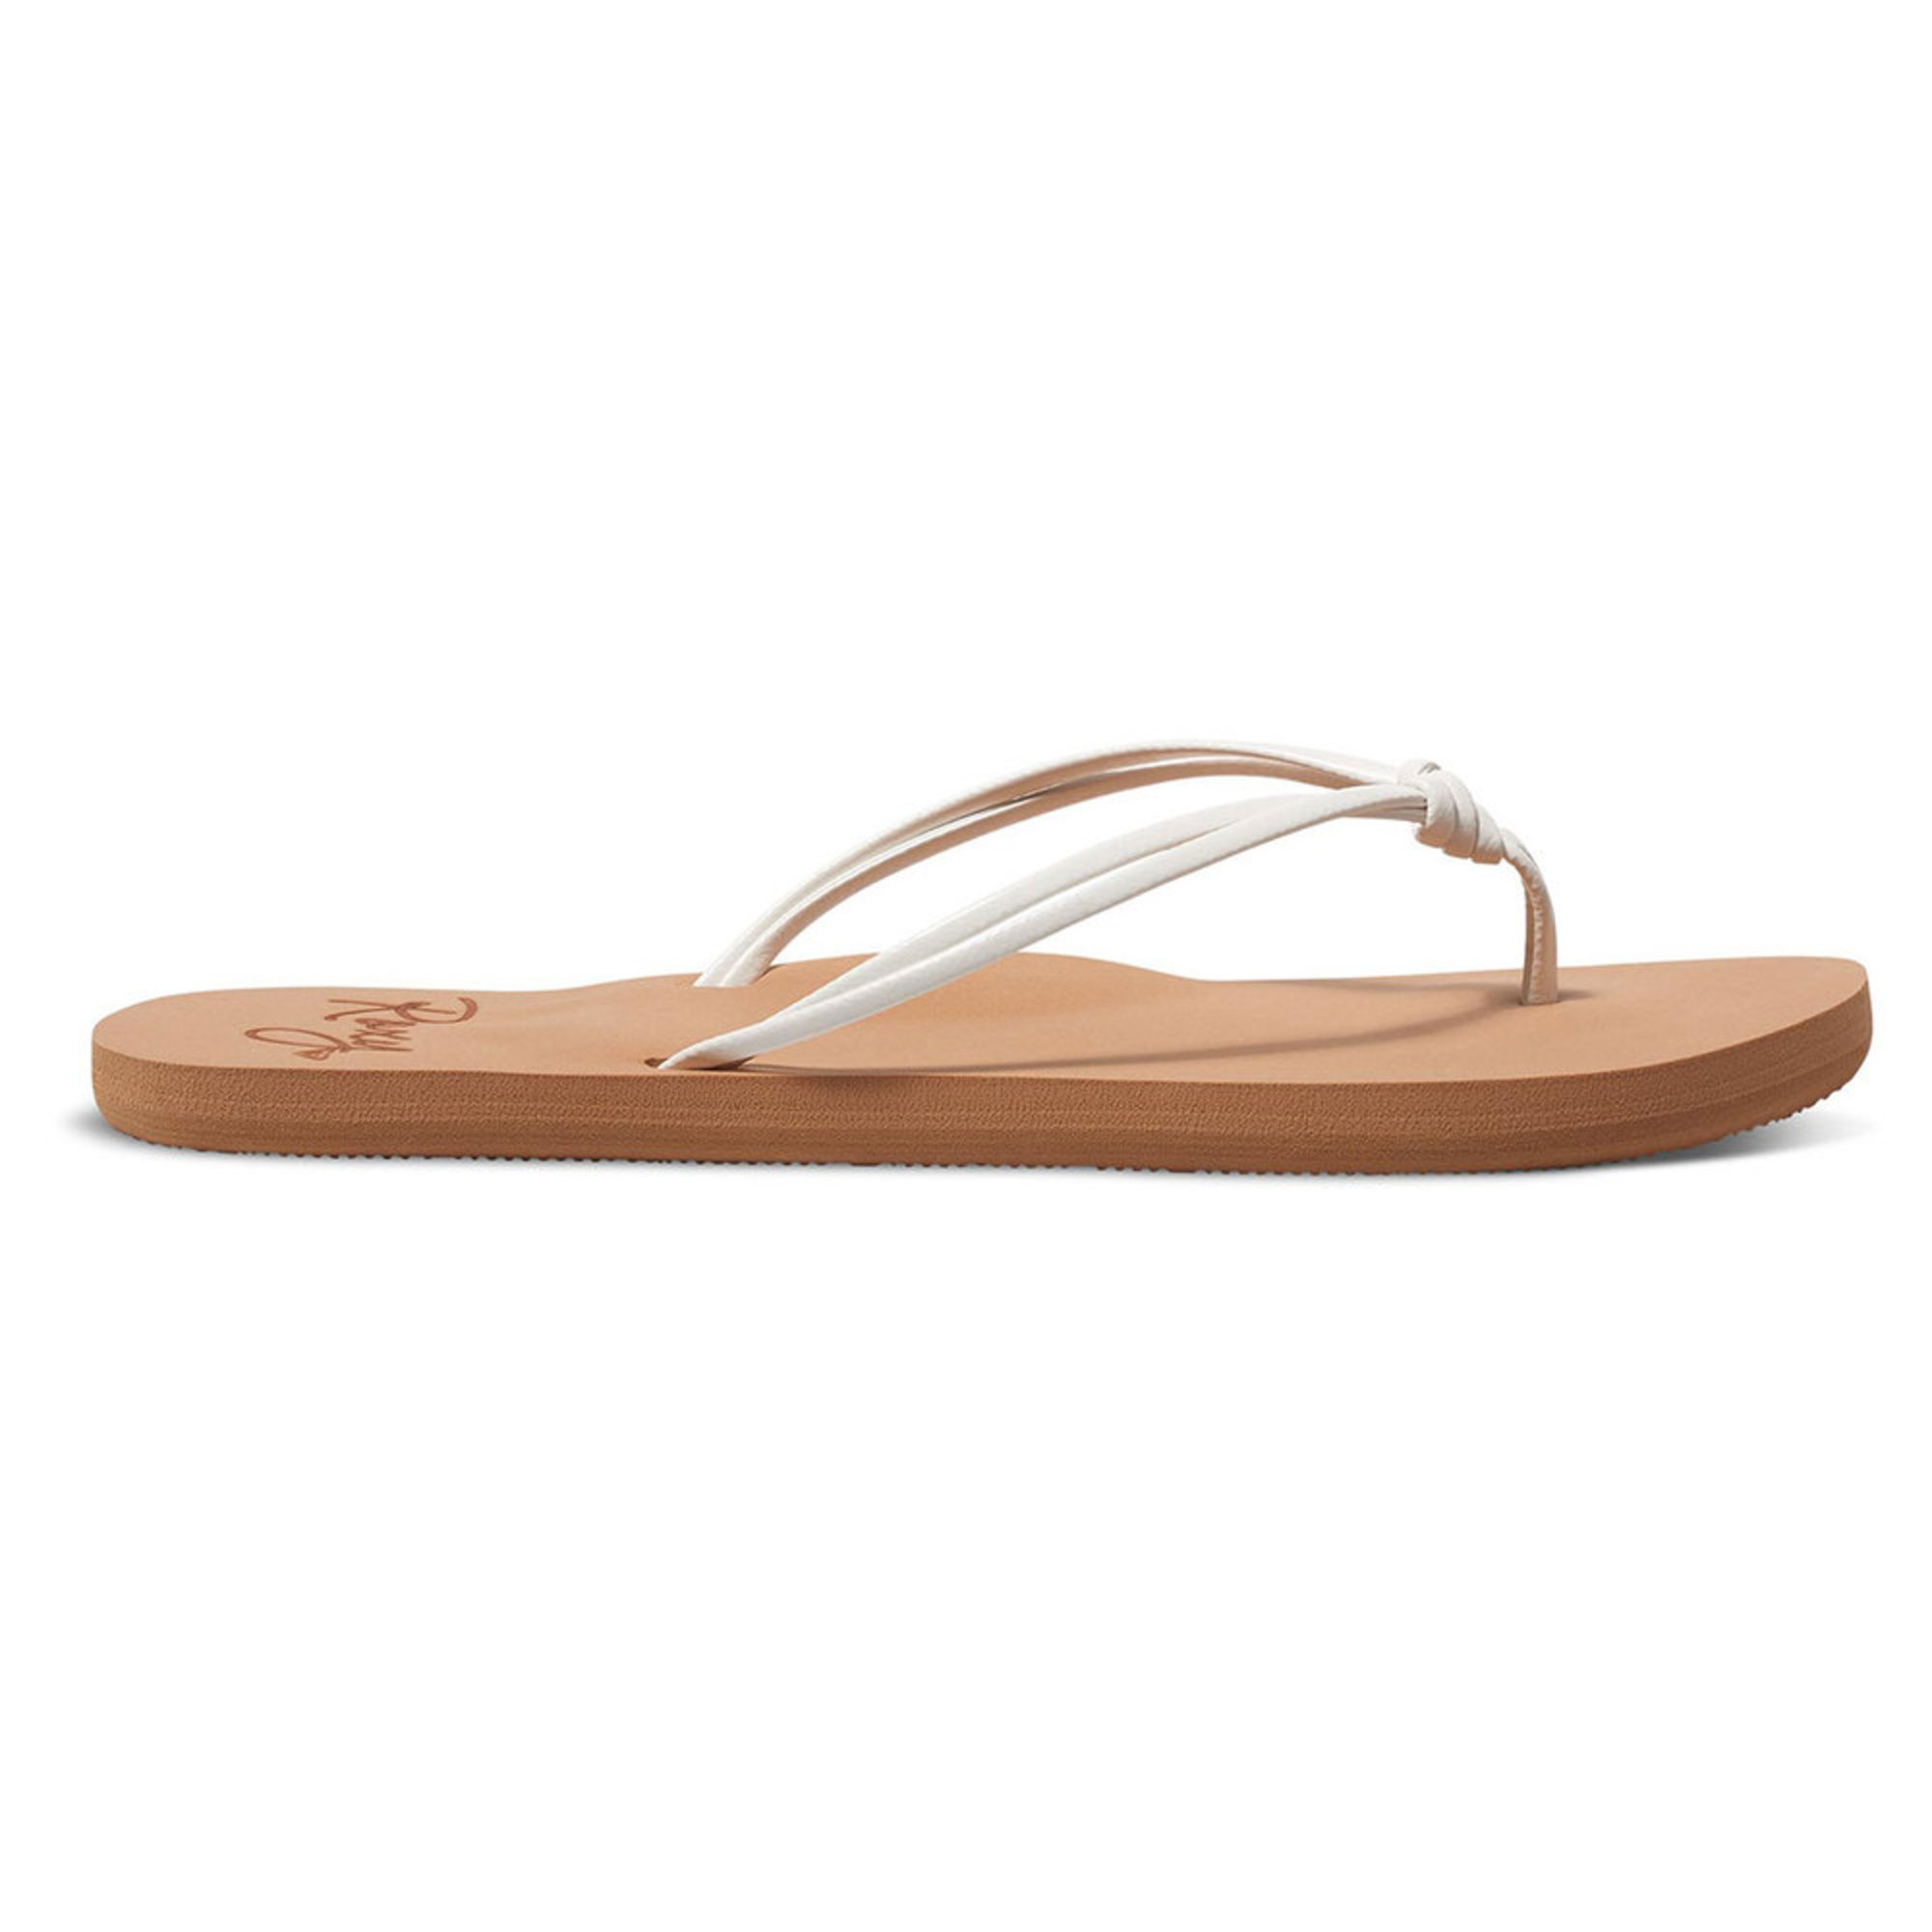 8a54c68461a203 Roxy. Roxy Girls Lahaina II Sandal (Little Kid Youth)